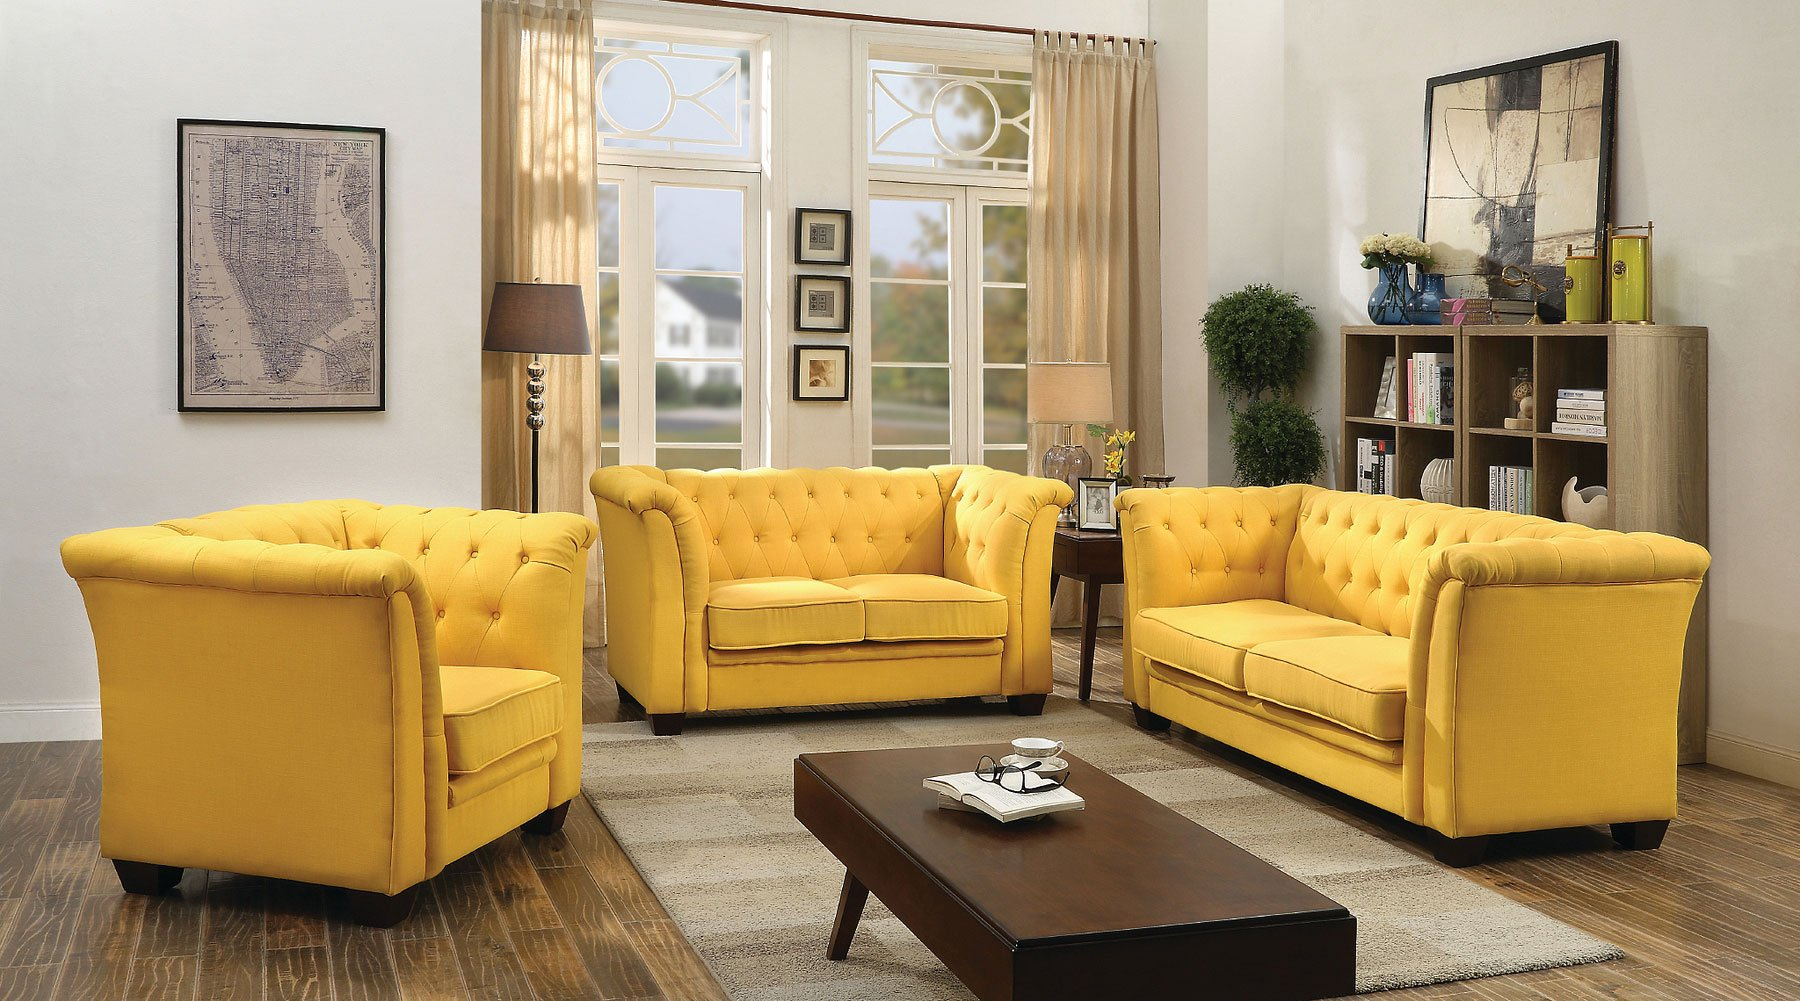 G322 tufted living room set yellow living room sets Furniture for yellow living rooms